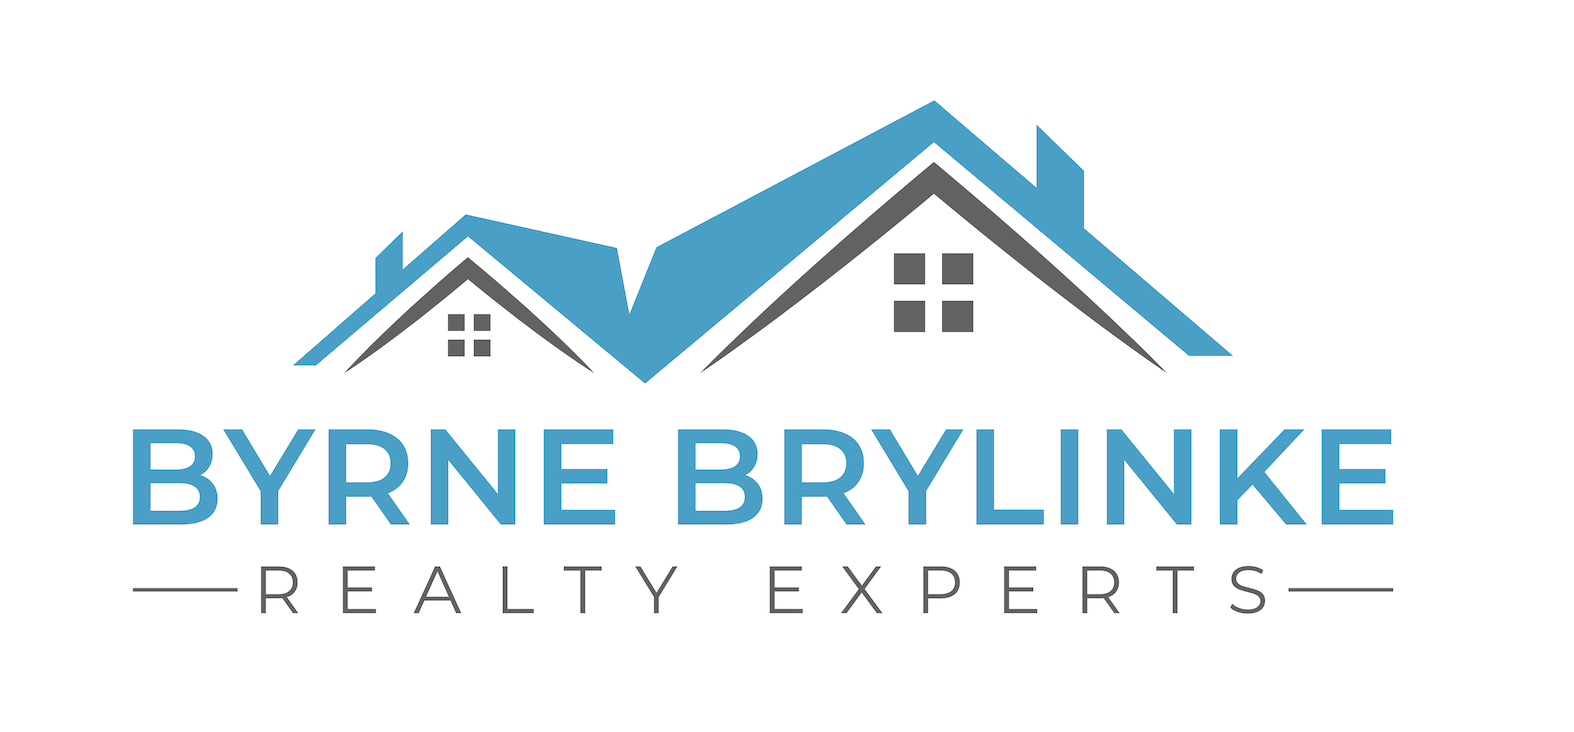 Byrne Brylinke Team @ Realty Experts